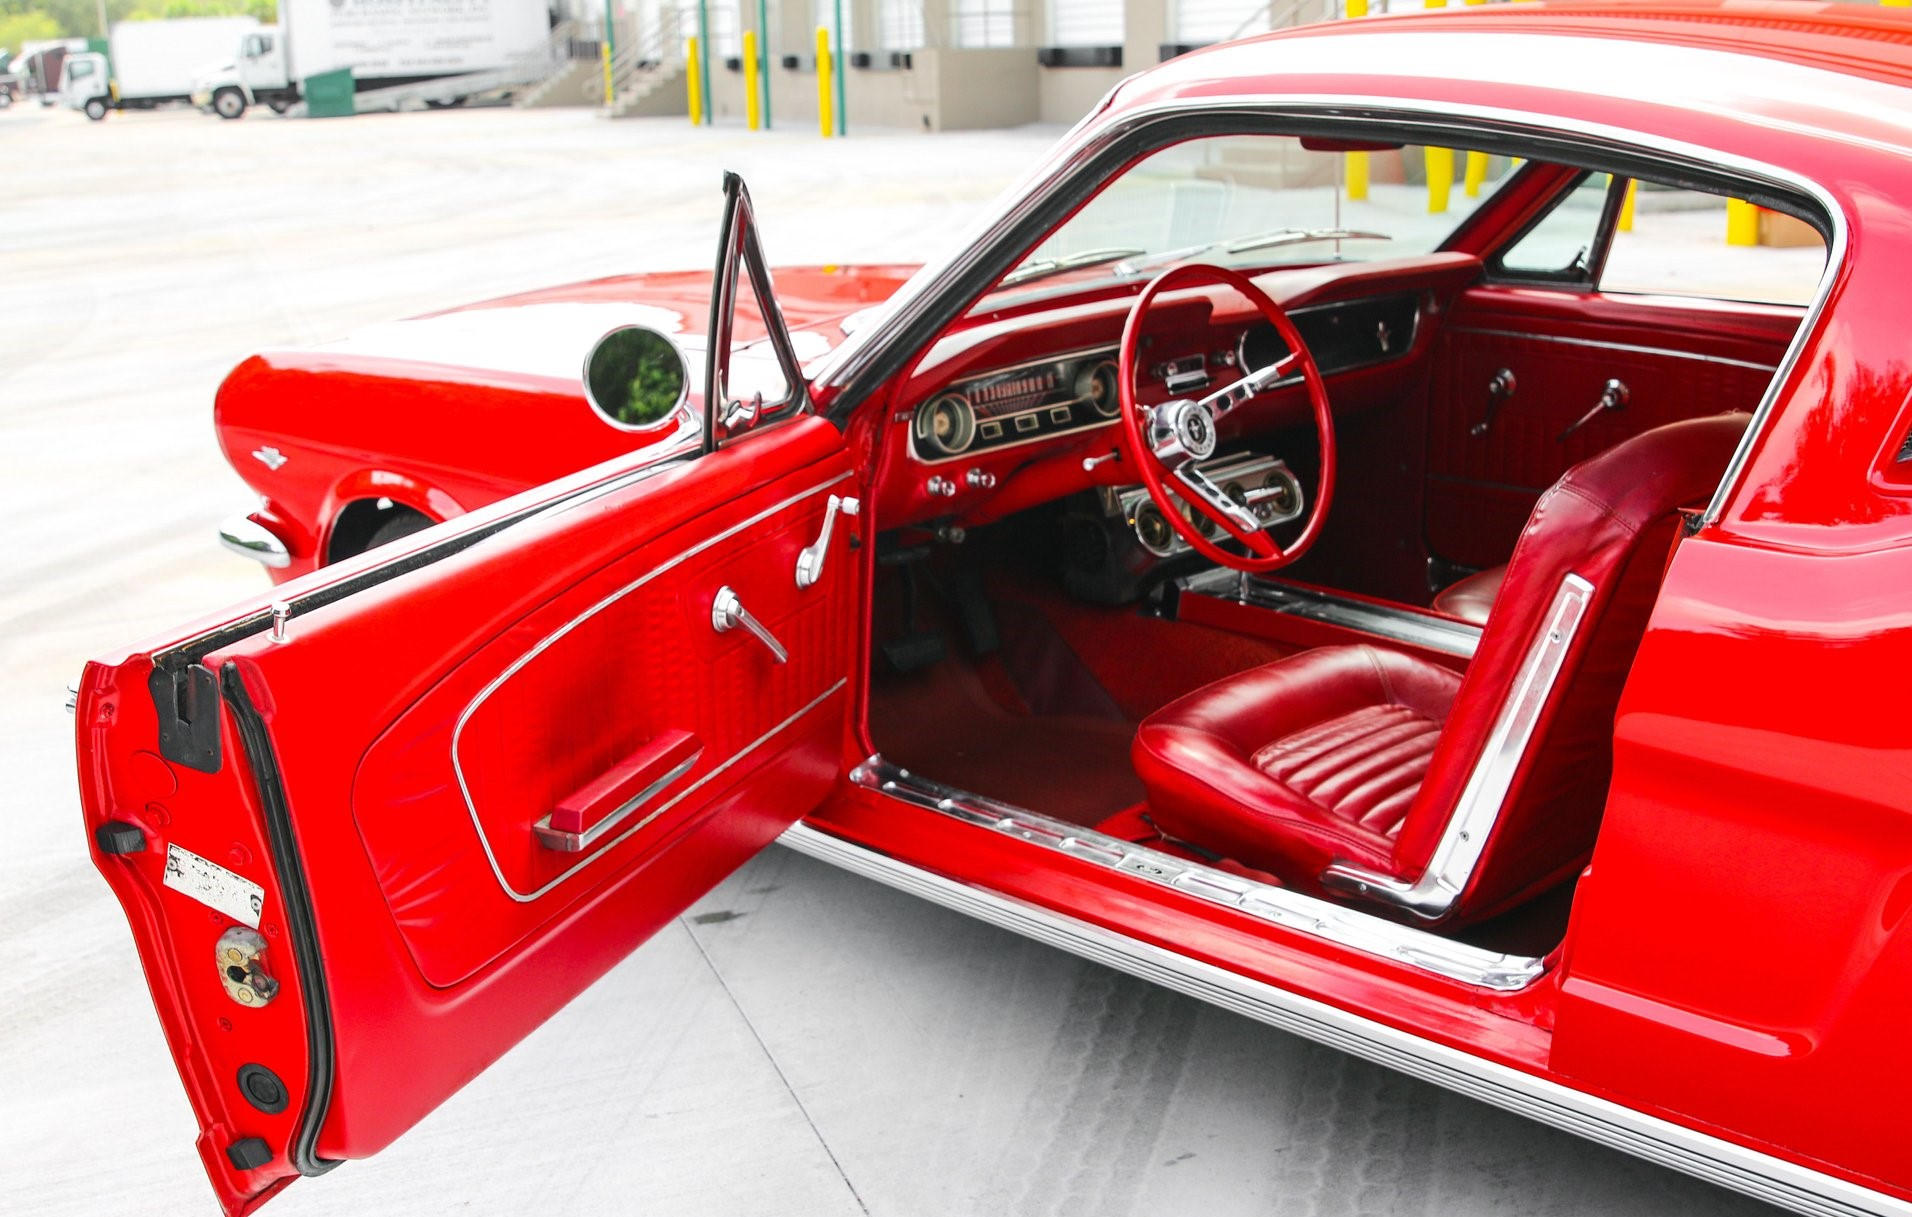 Mustang Fastback 289ci V8 Code C automatique 196550 102 €